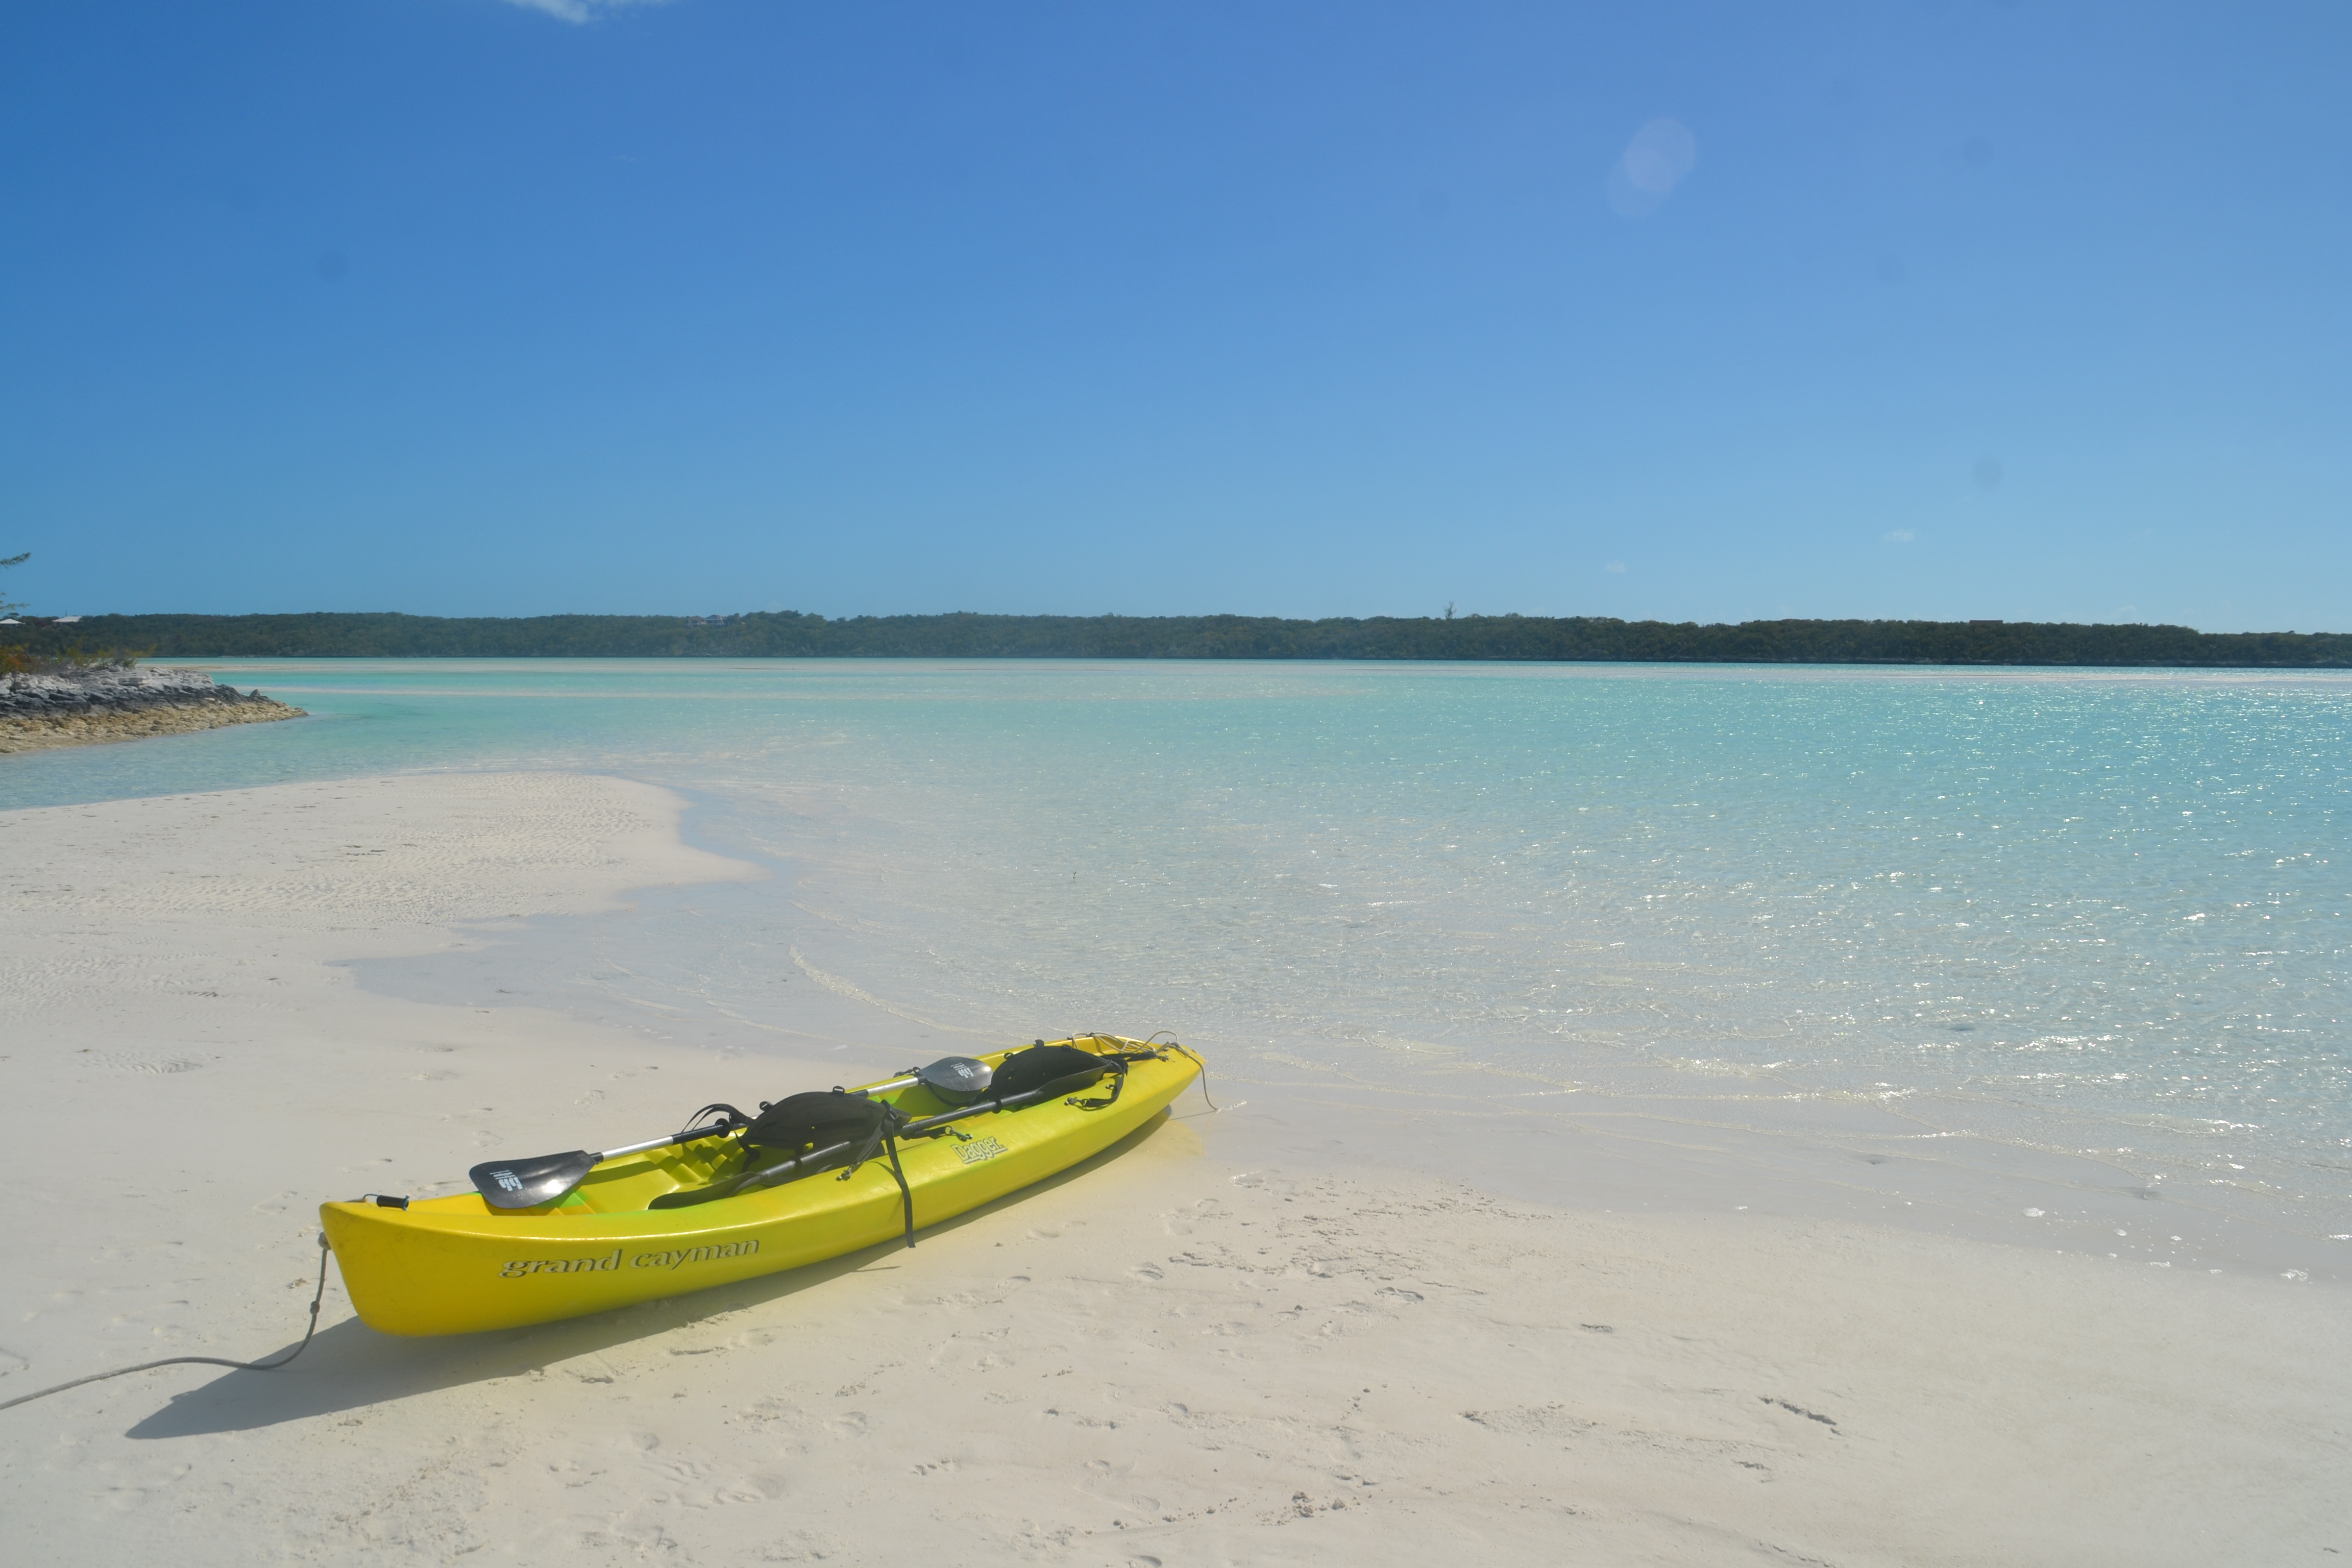 Harbor View Exuma kayak